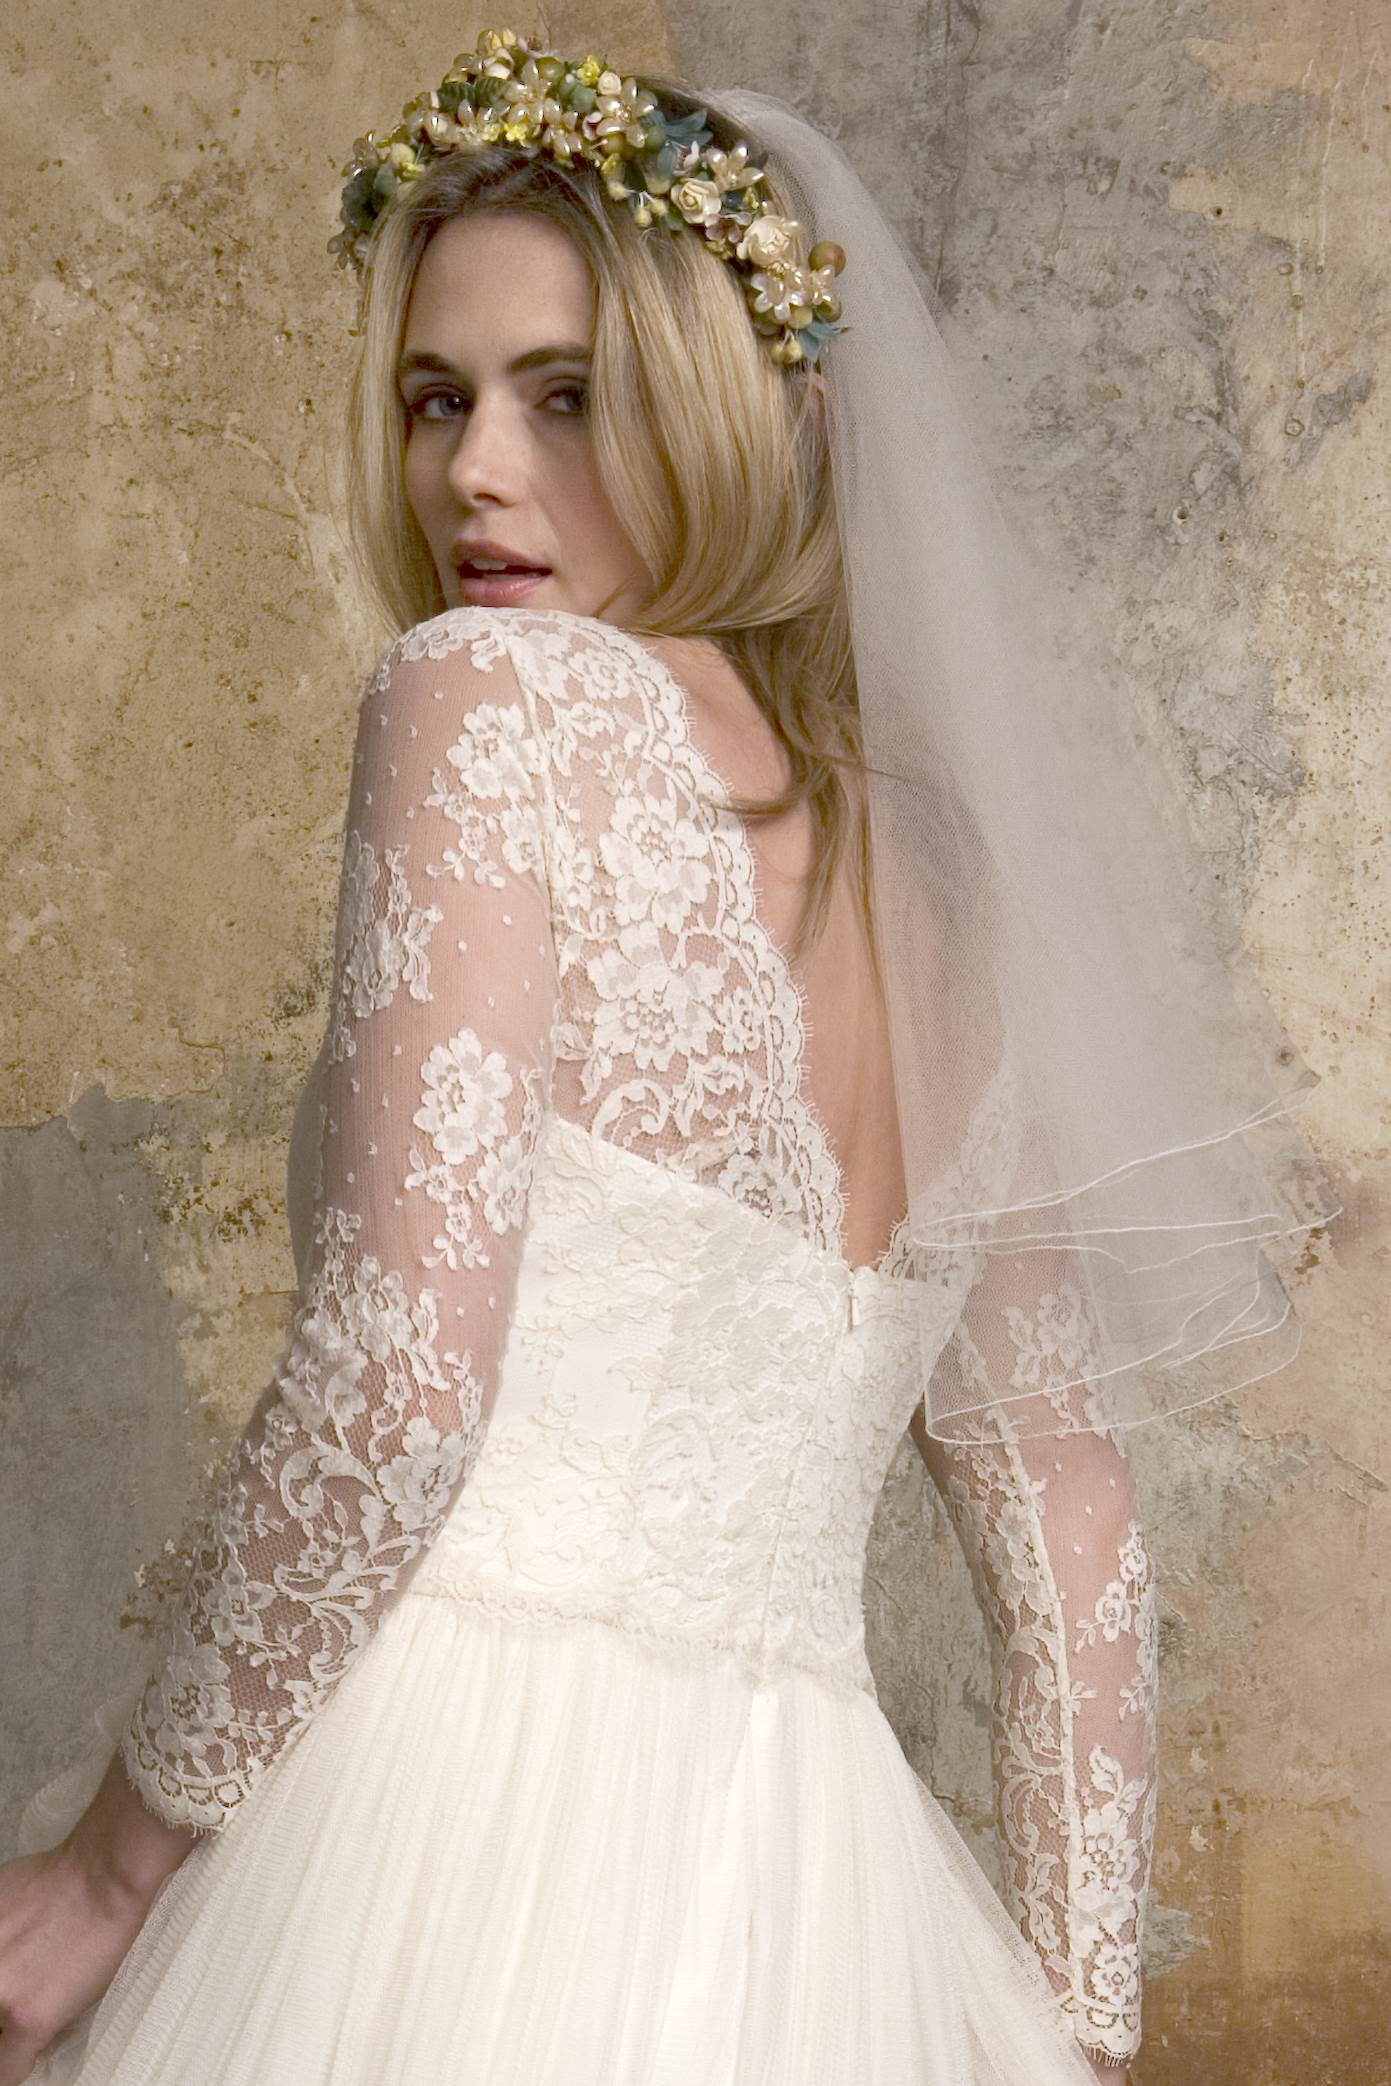 Sylvie by Sally Lacock as featured on The National Vintage Wedding Fair blog